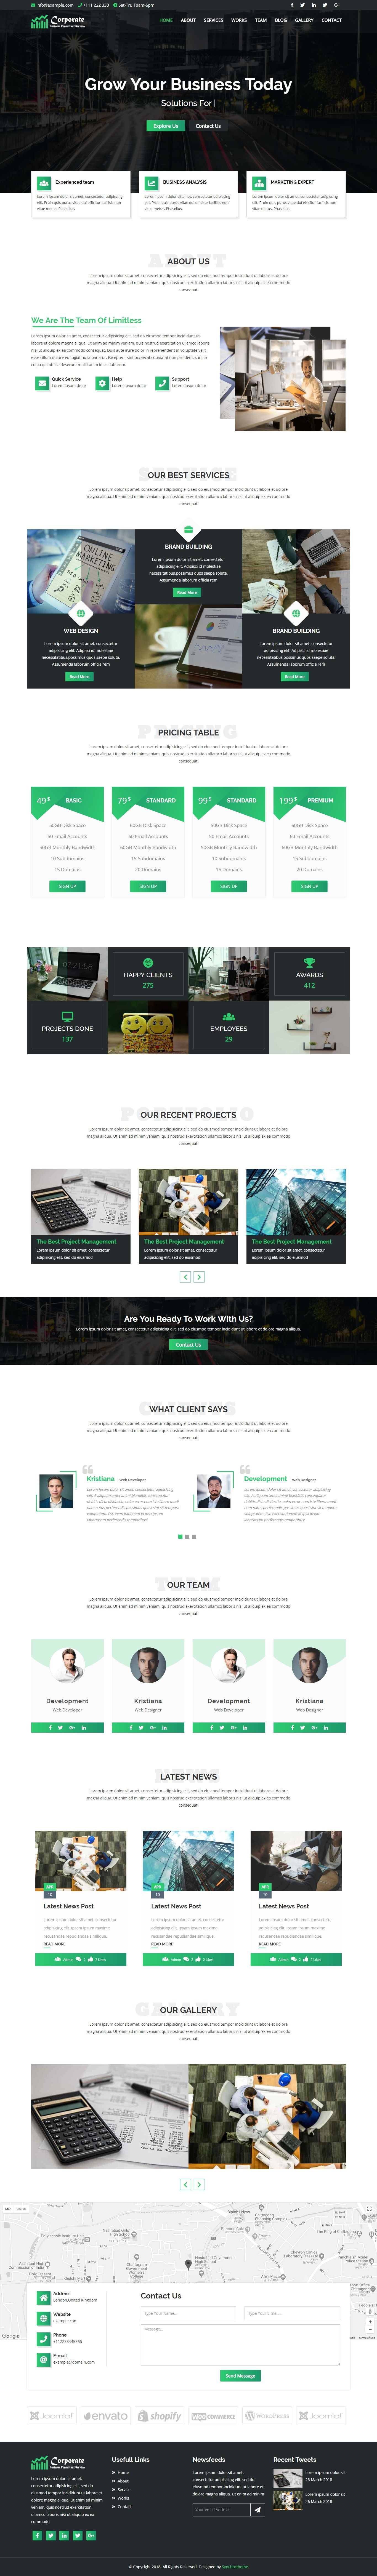 Corporate - Business and Portfolio Template Screenshot 2